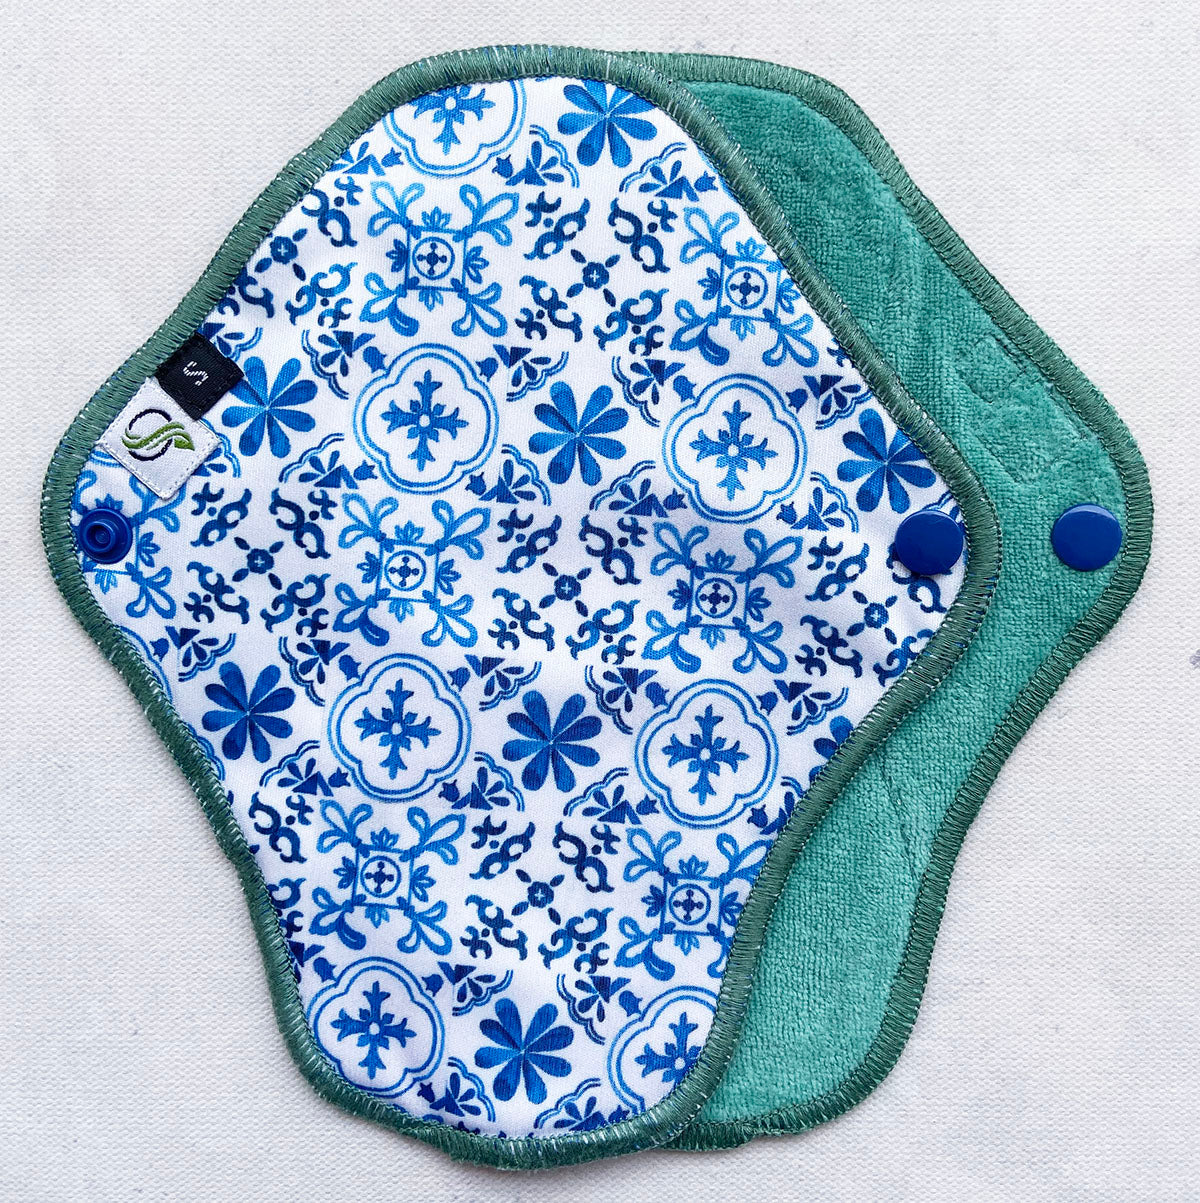 Cloth Sanitary Pad - Liner (Spotting/Backup for Cup)